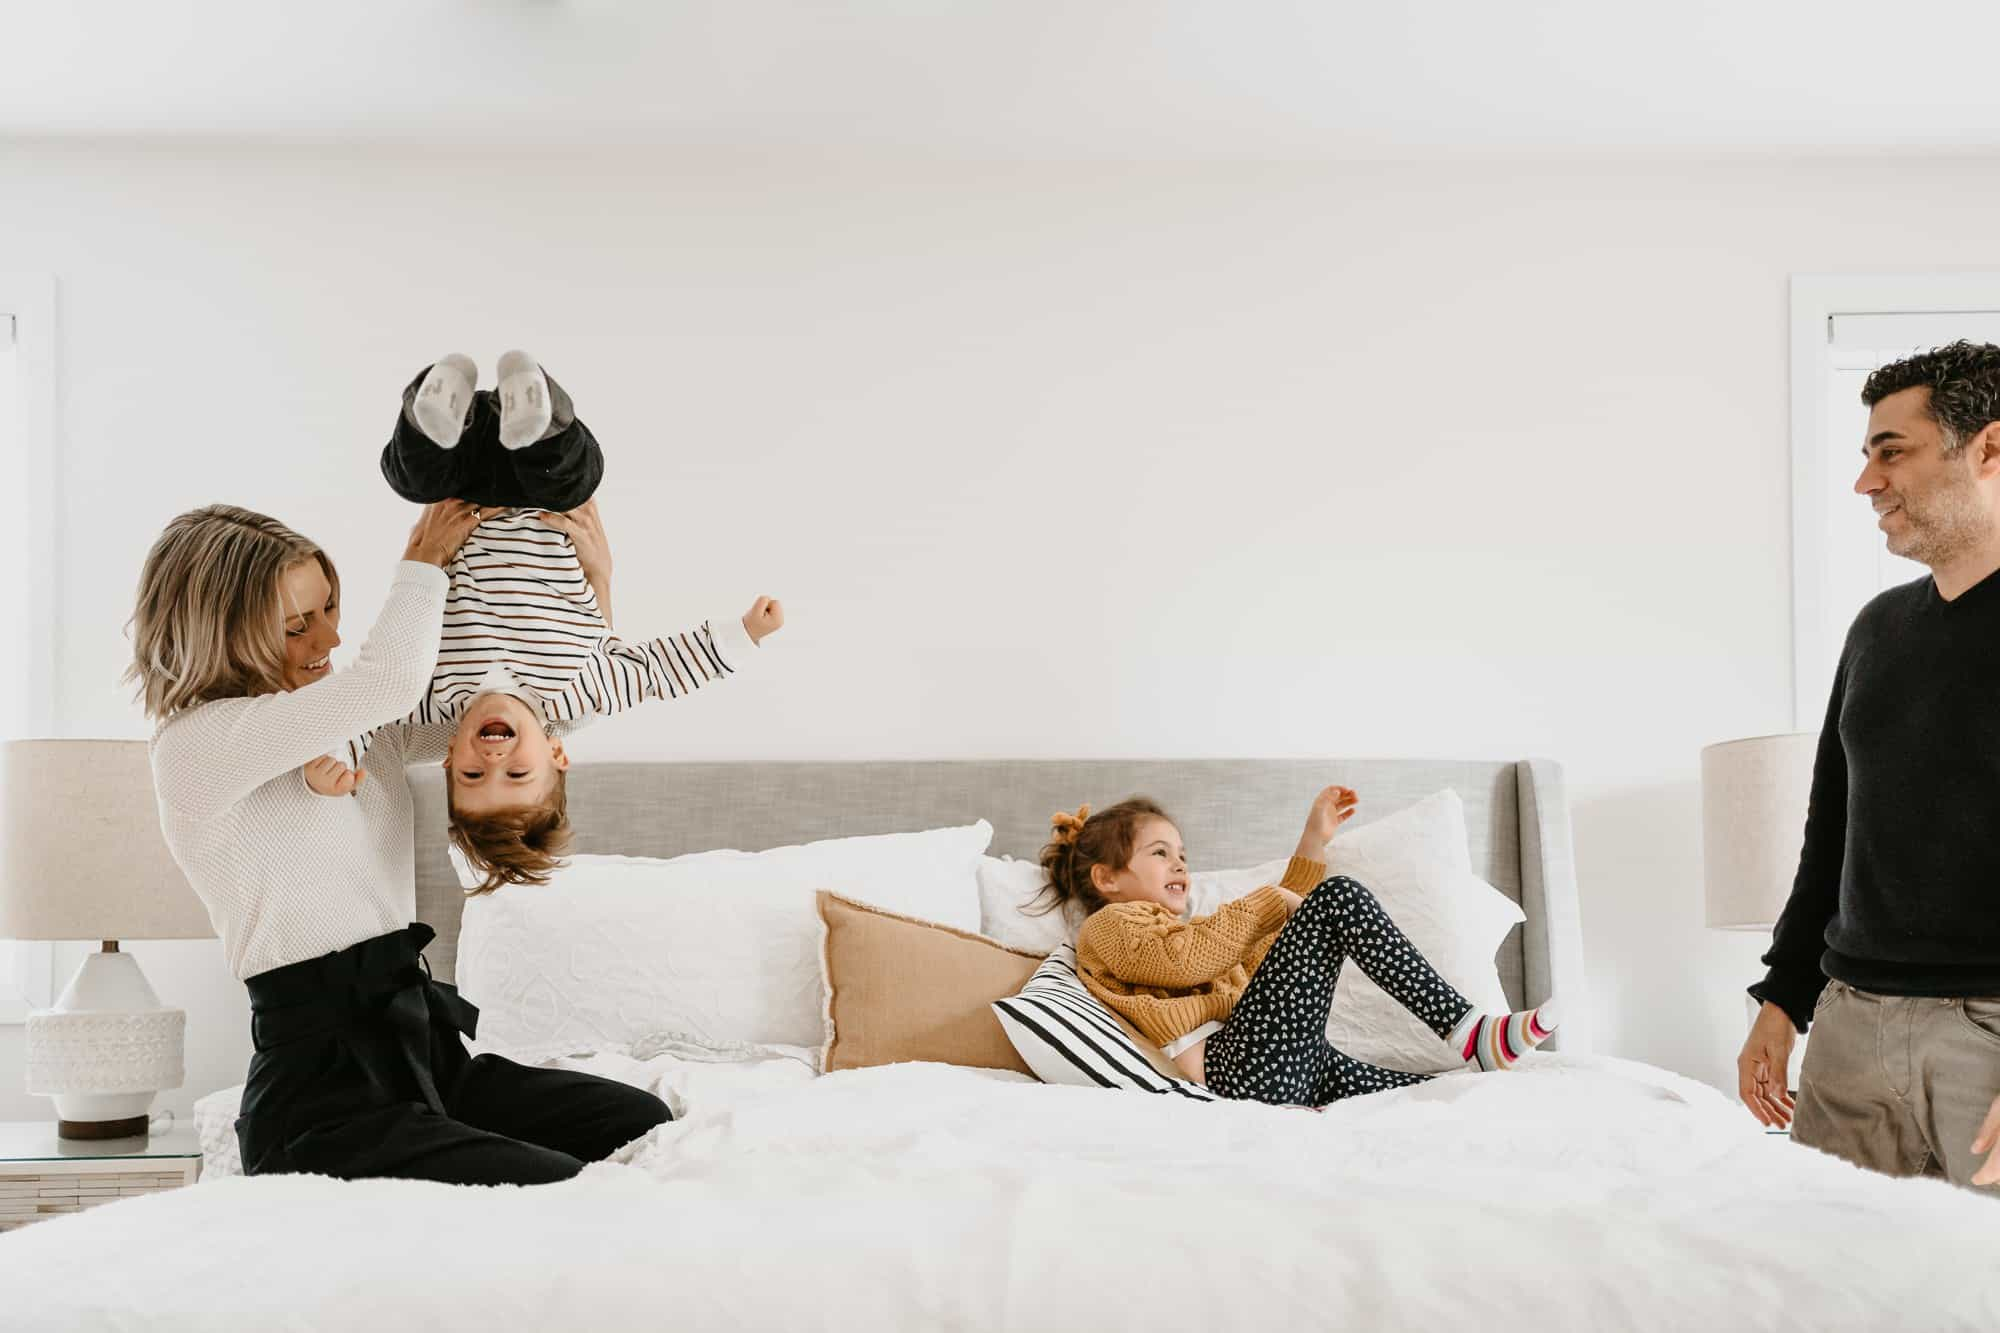 Family on bed playing with children